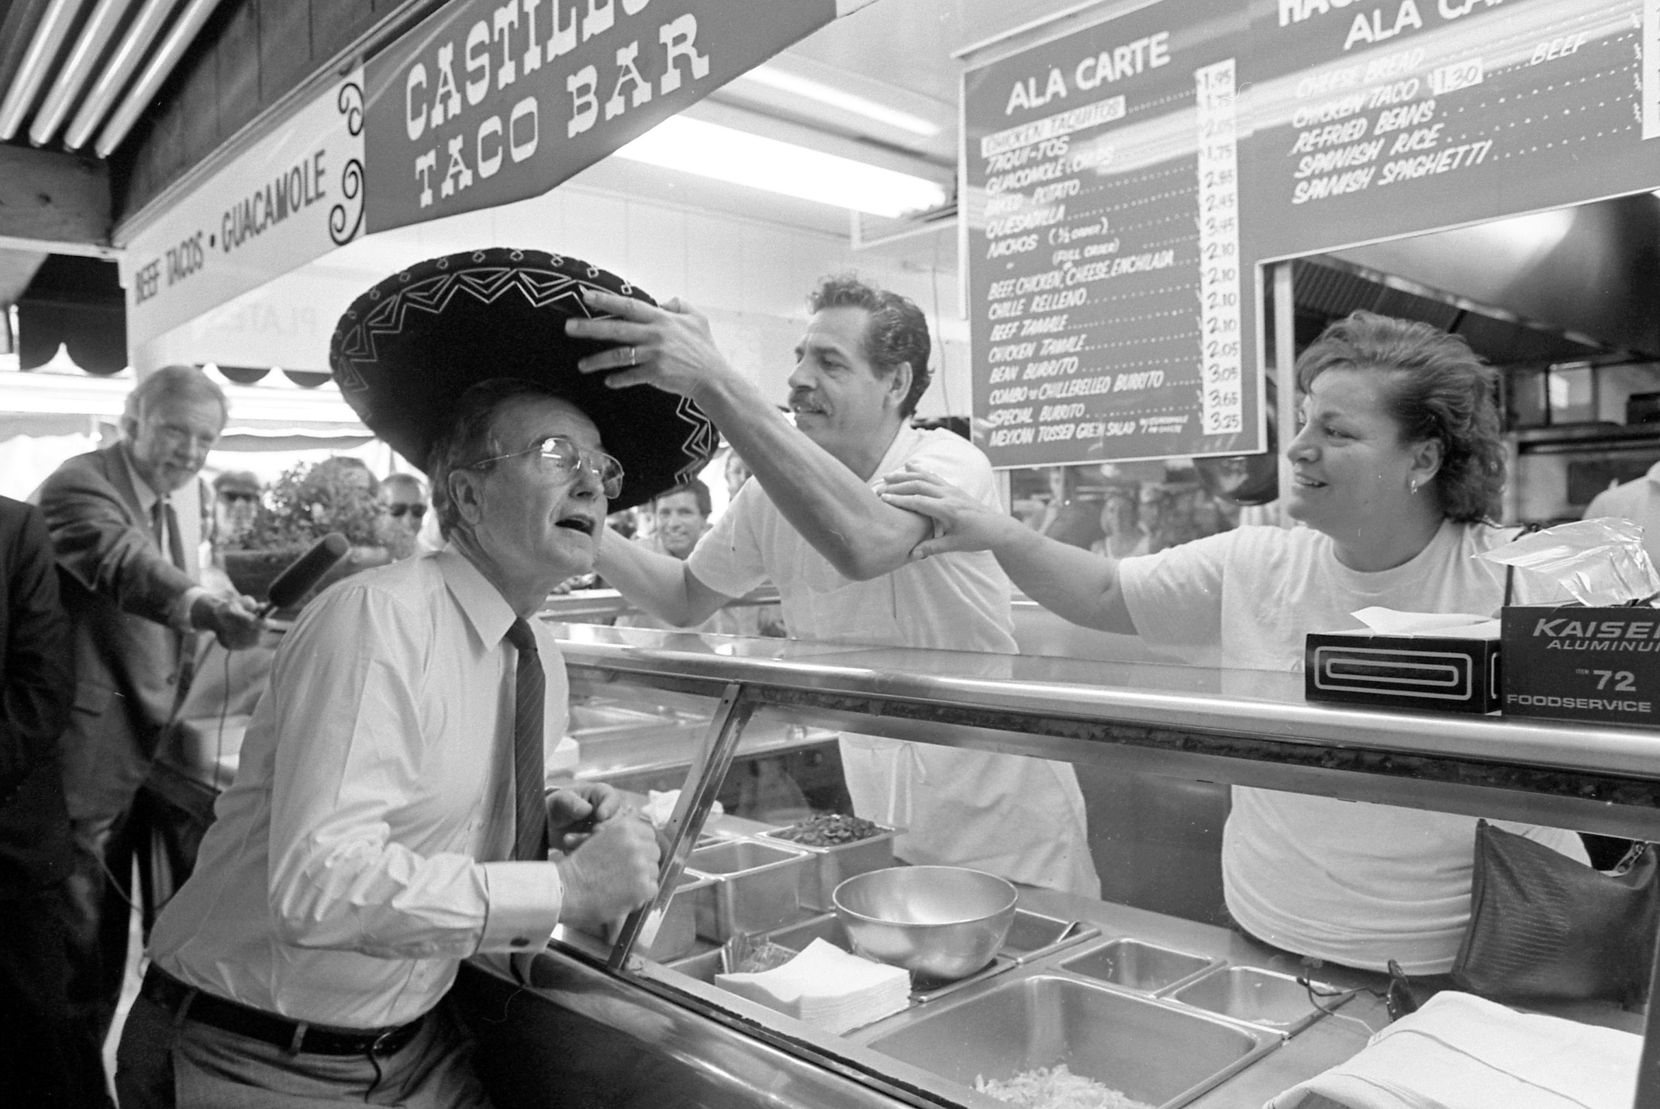 Vice President George H.W. Bush checked out a sombrero while campaigning at Farmers Market in Los Angeles in March 1988.